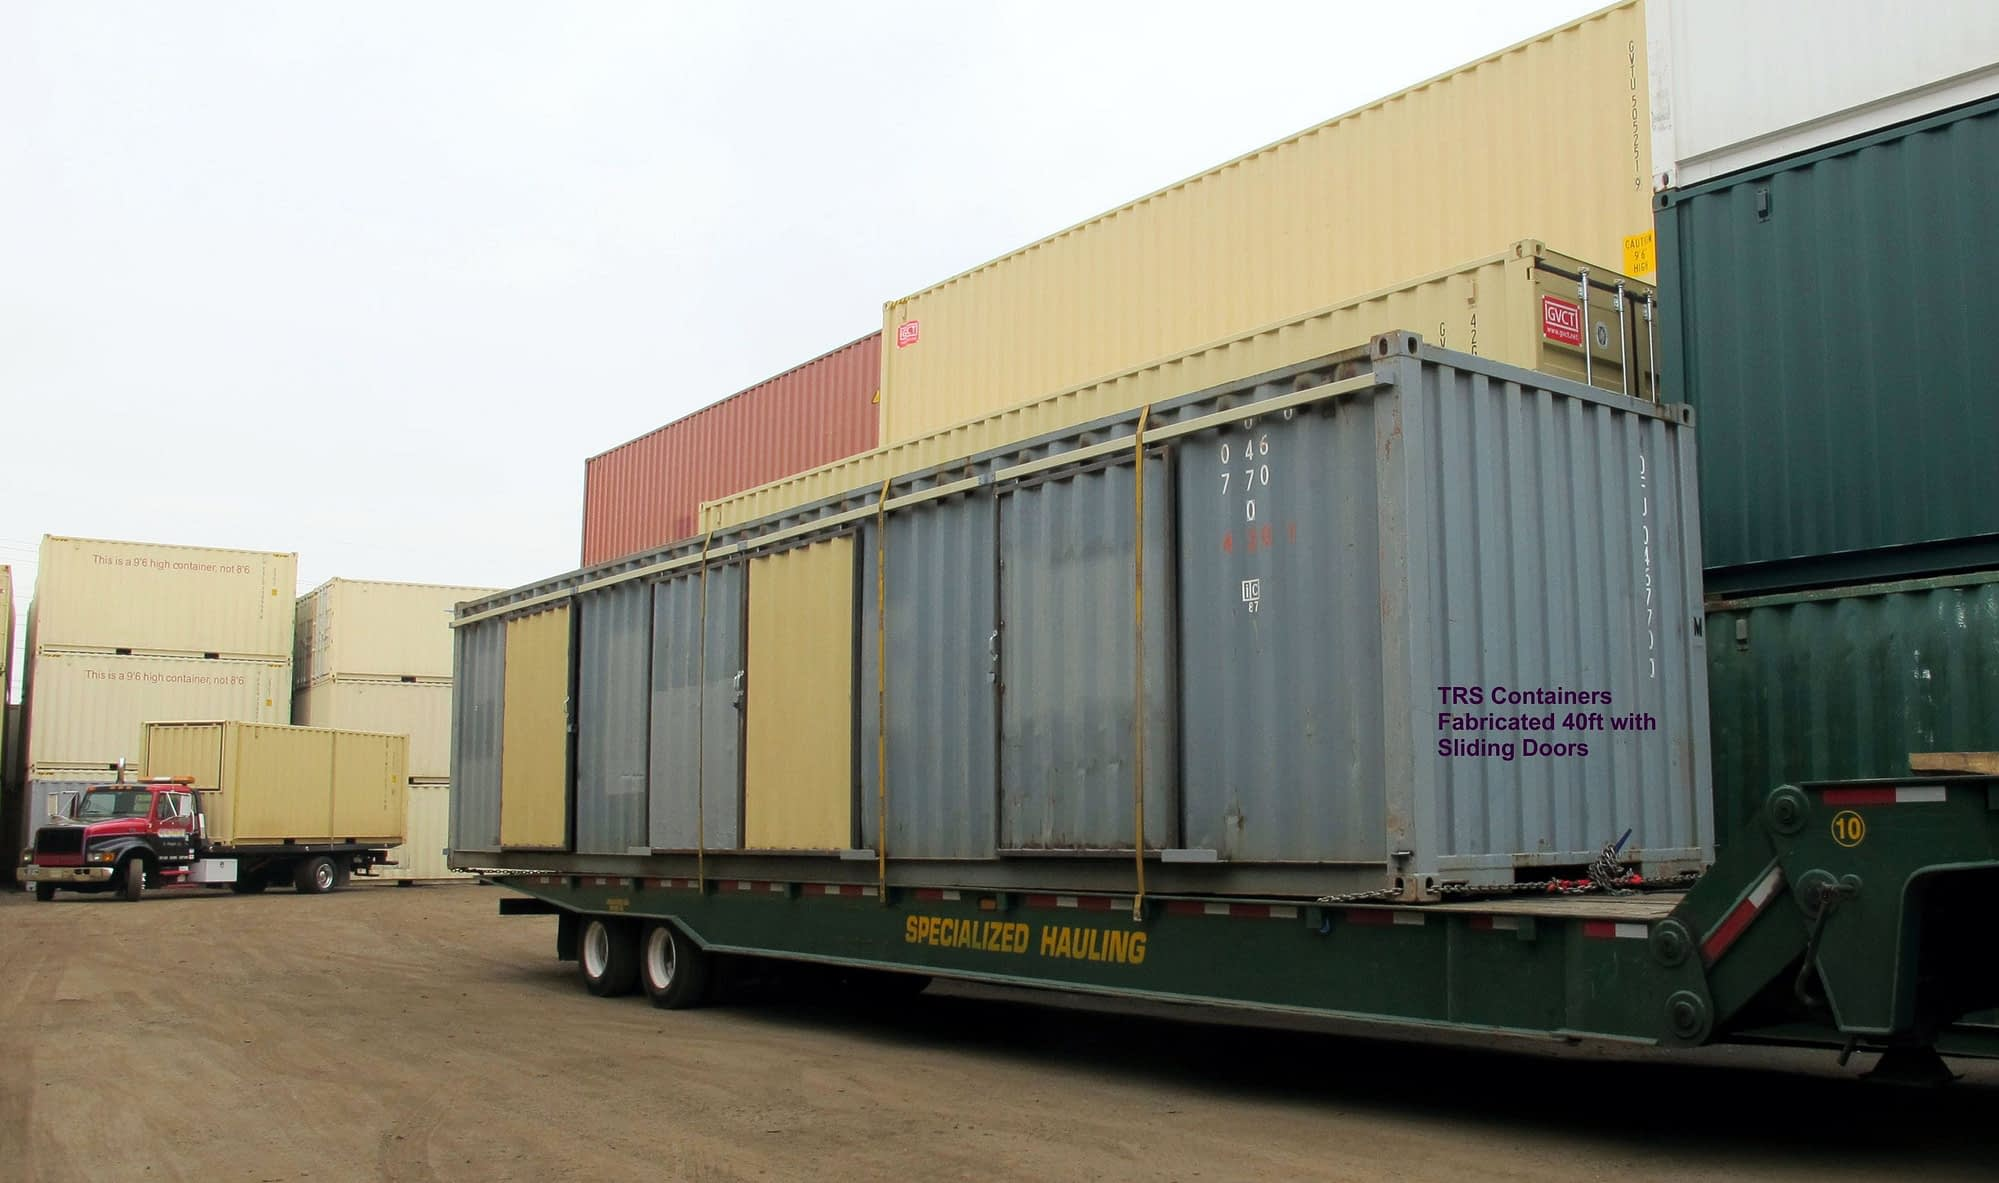 TRS Containers modifies 20ft, 40ft and 45ft long steel containers into alternative containr structures